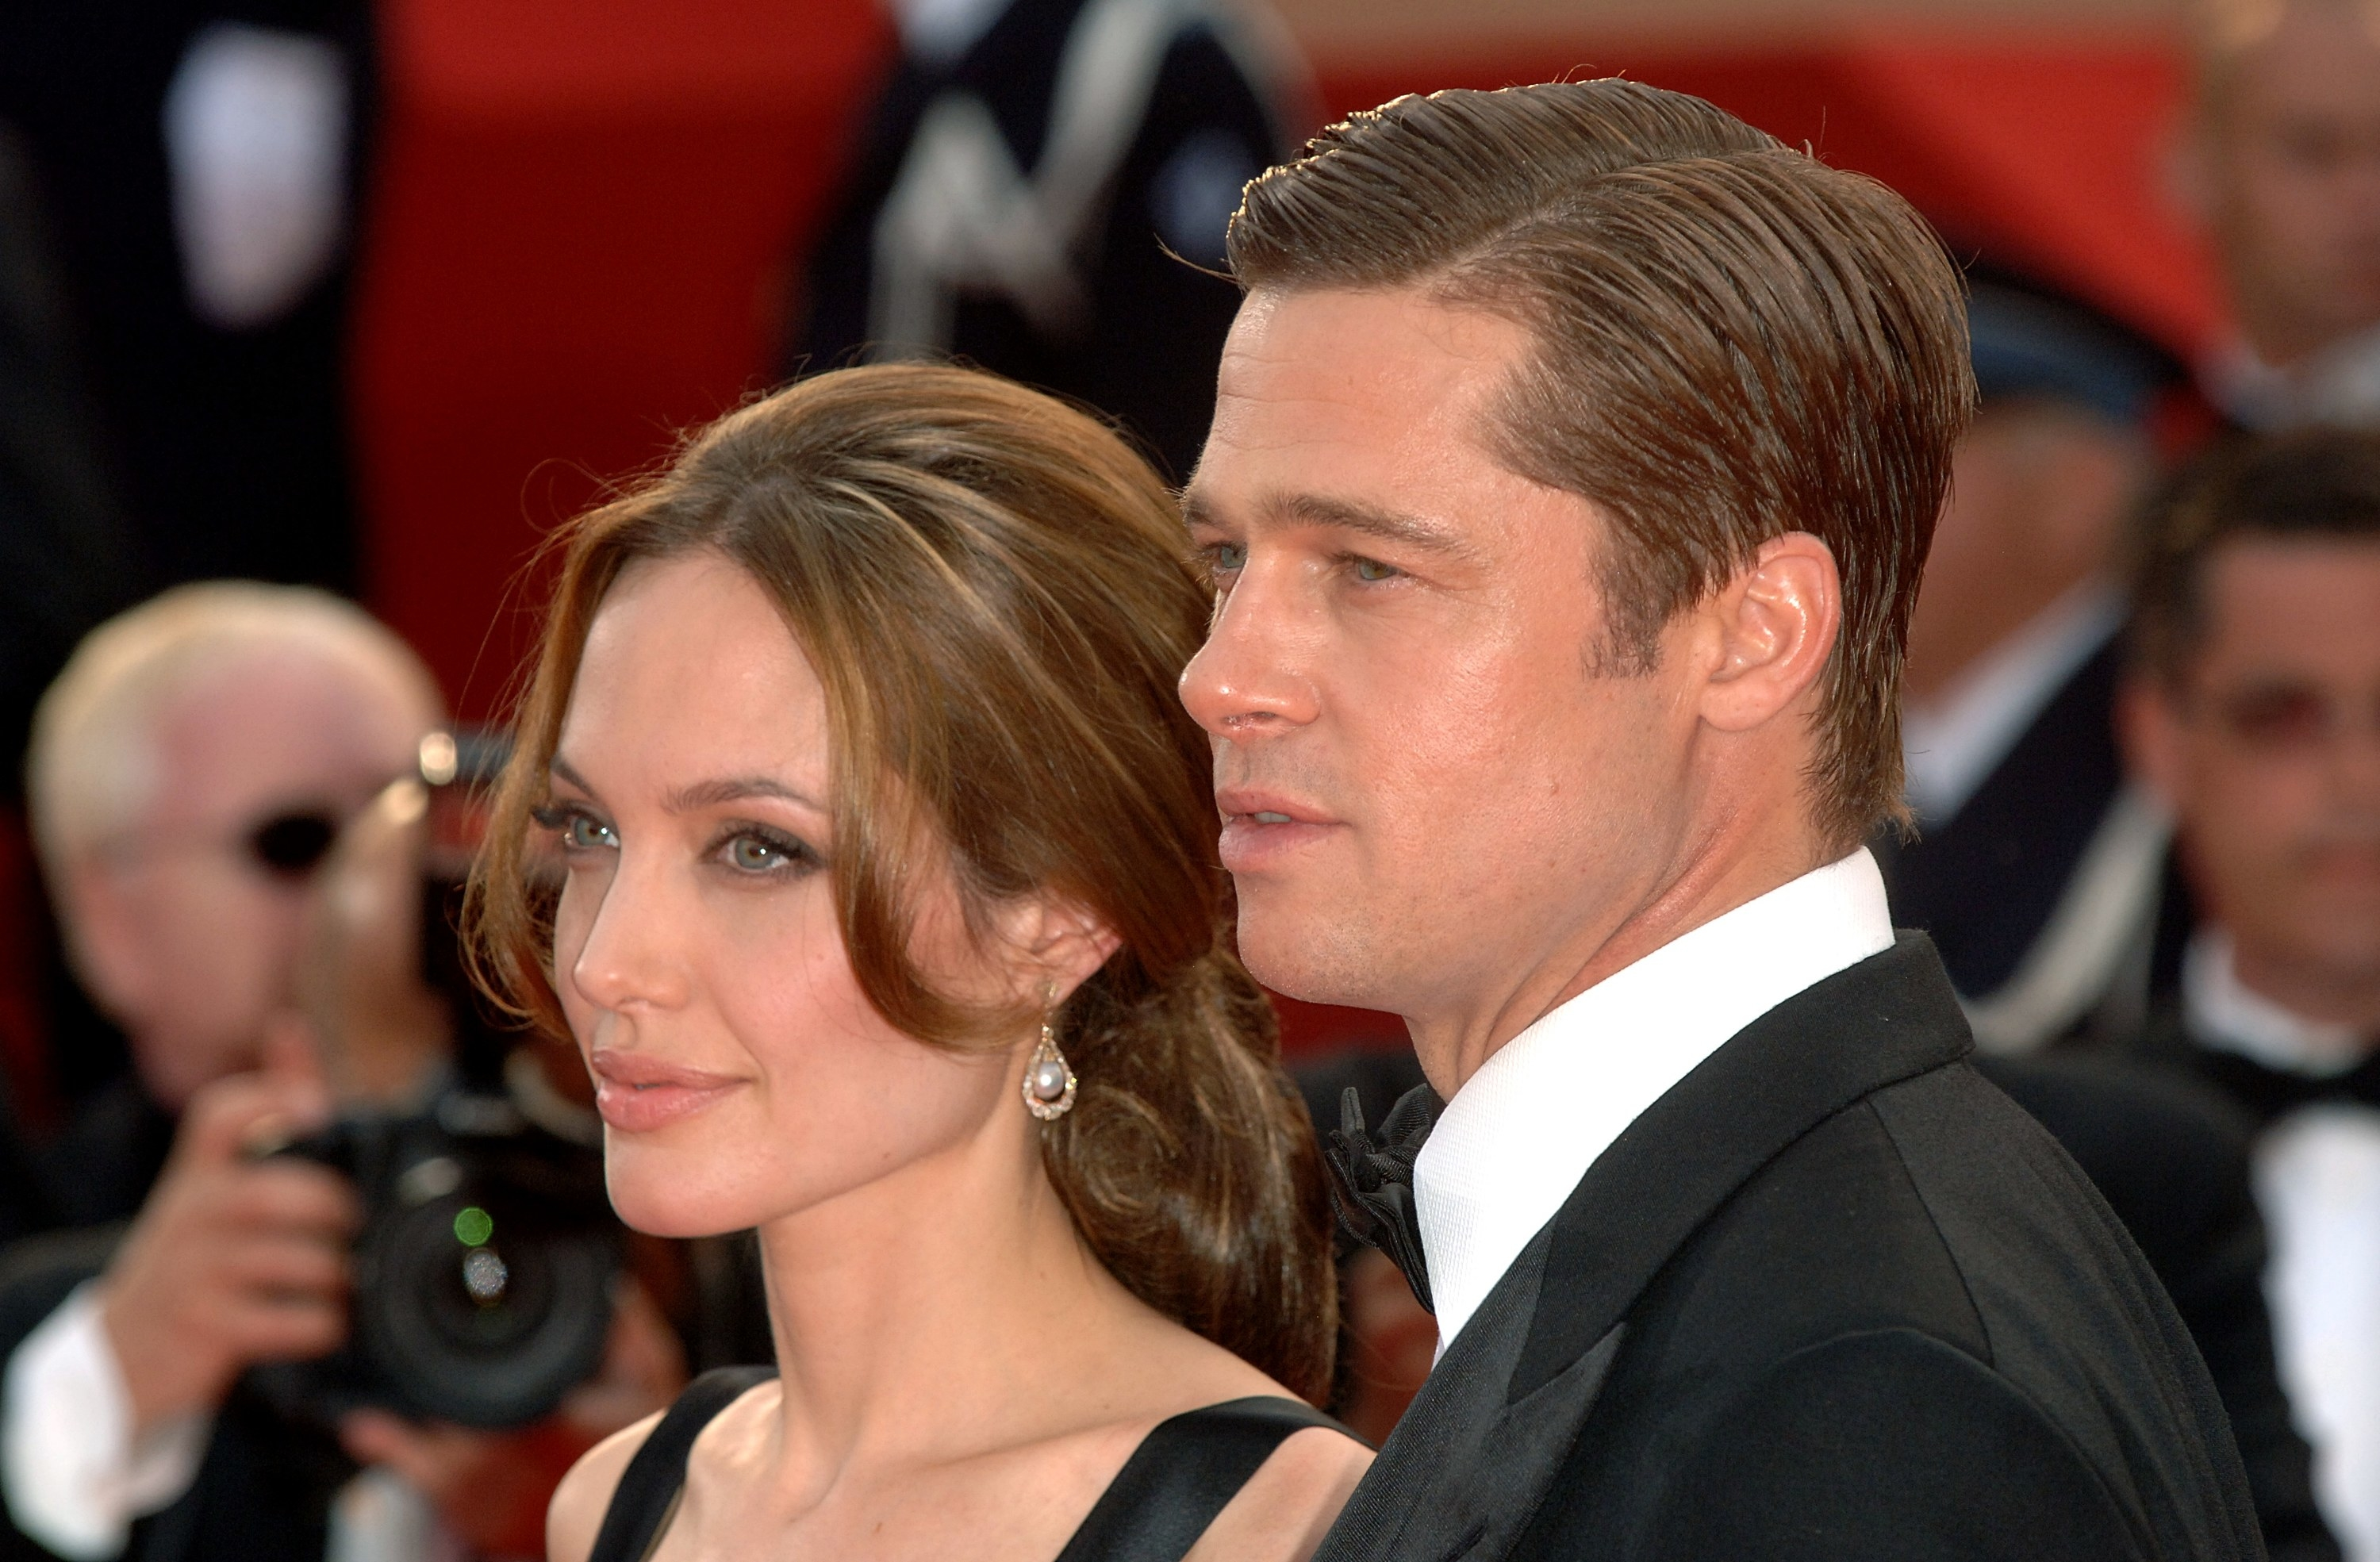 Angelina and Brad pose for paparazzi